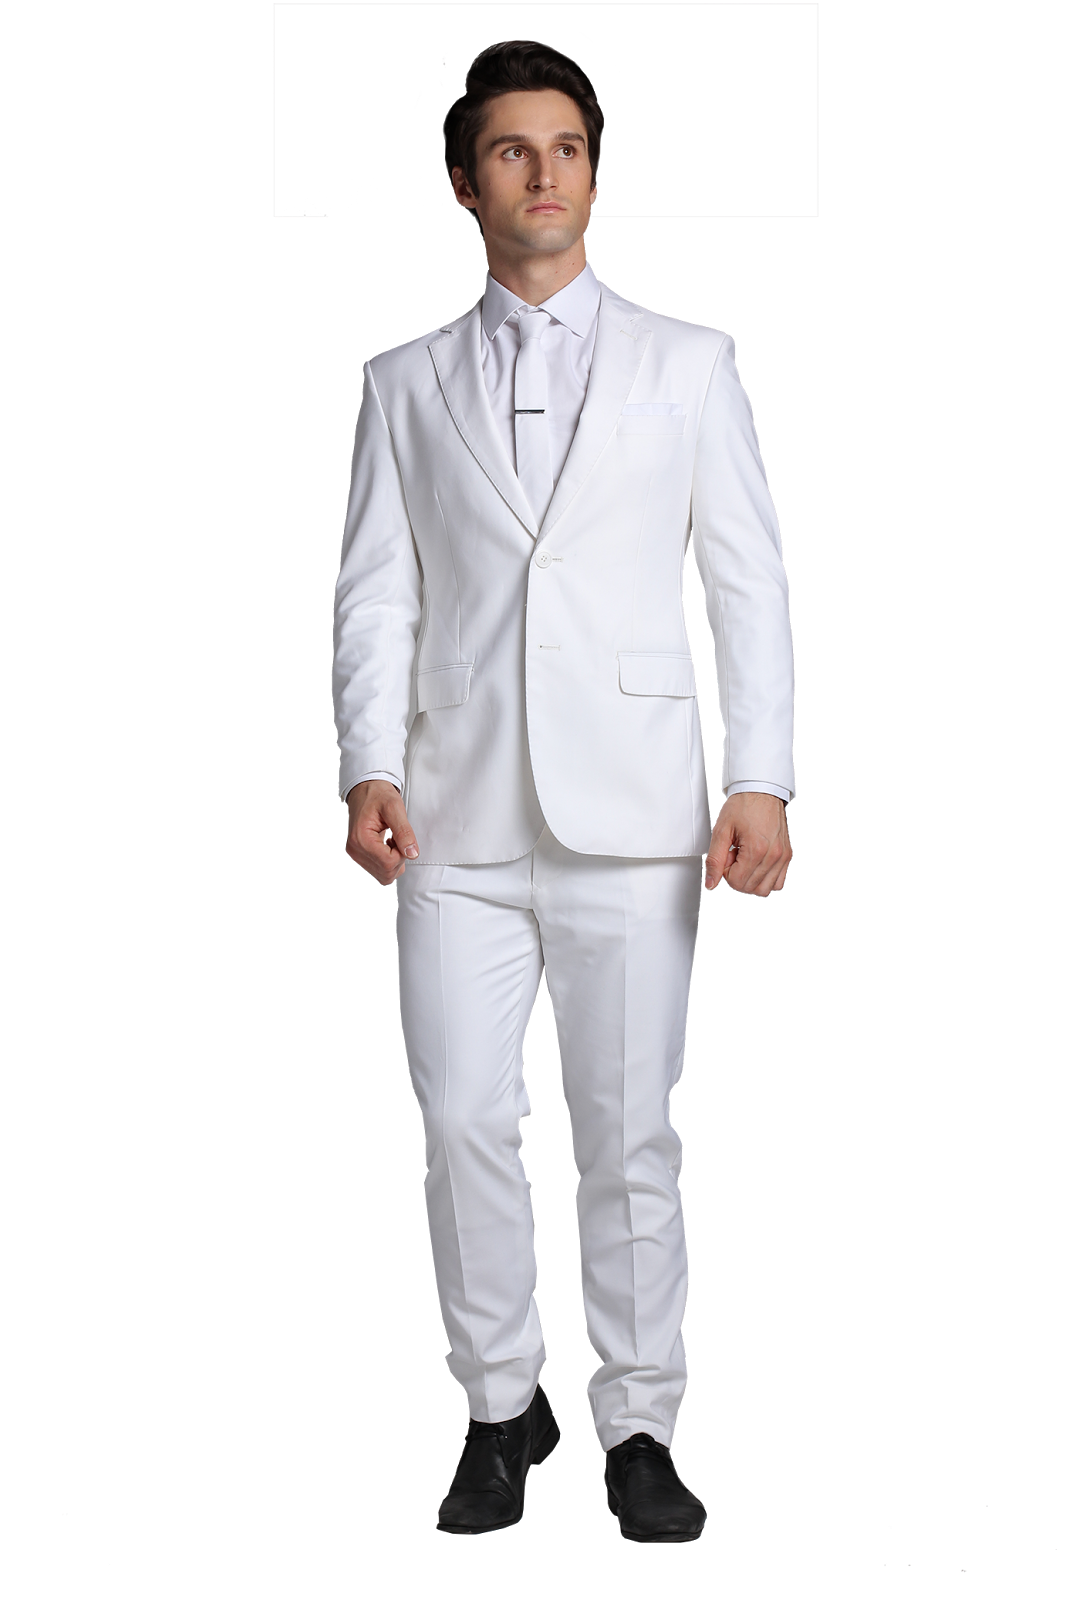 image men suit png transparent background free download 9472 freeiconspng image men suit png transparent